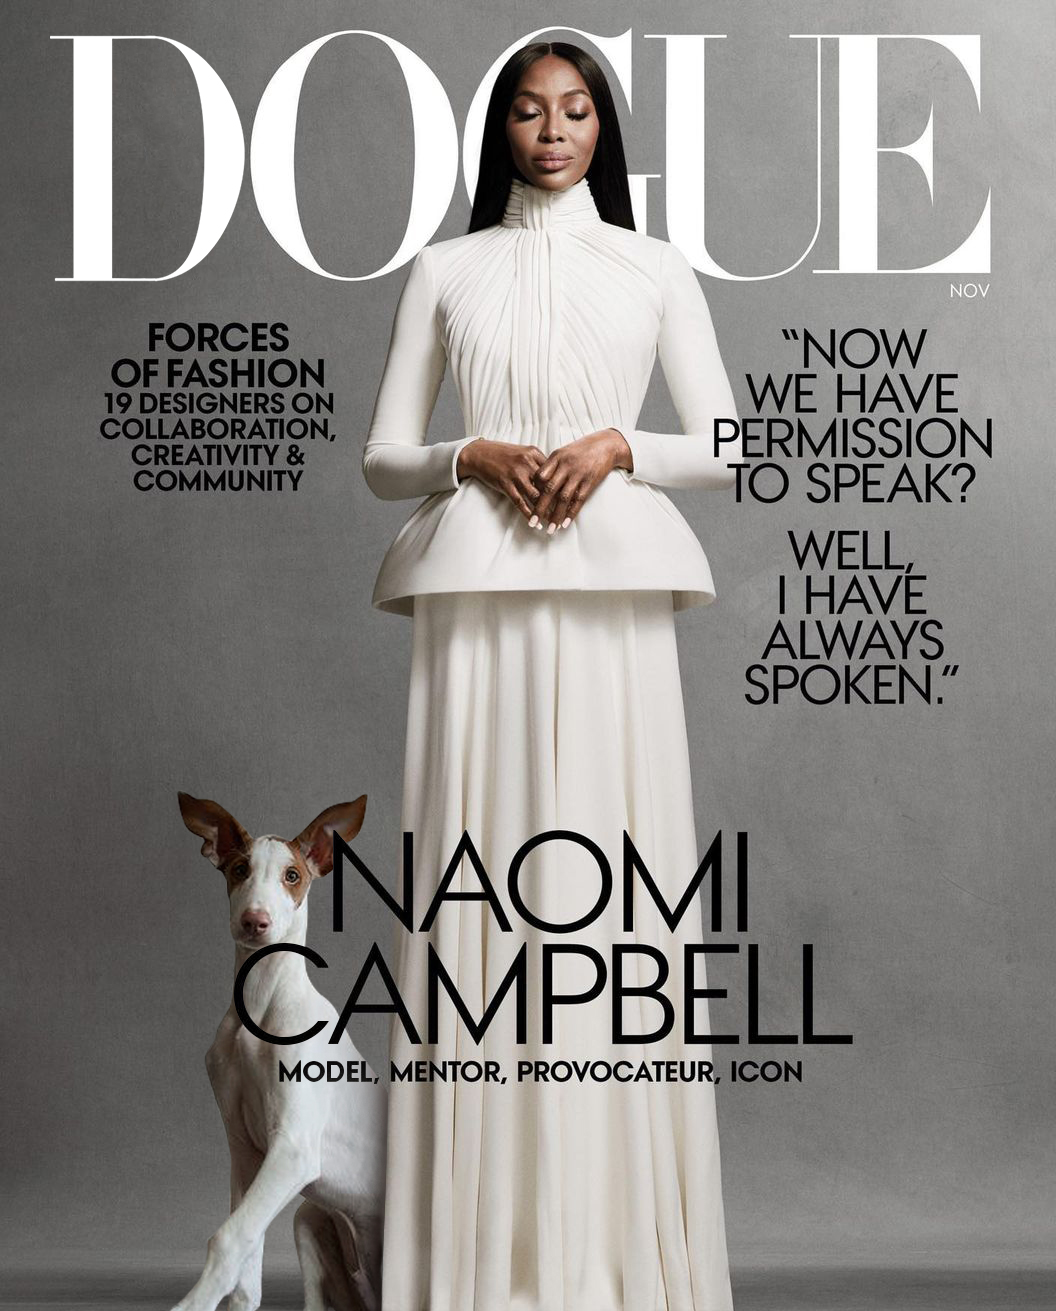 Dogue Magazine Naomi Campbell 2020